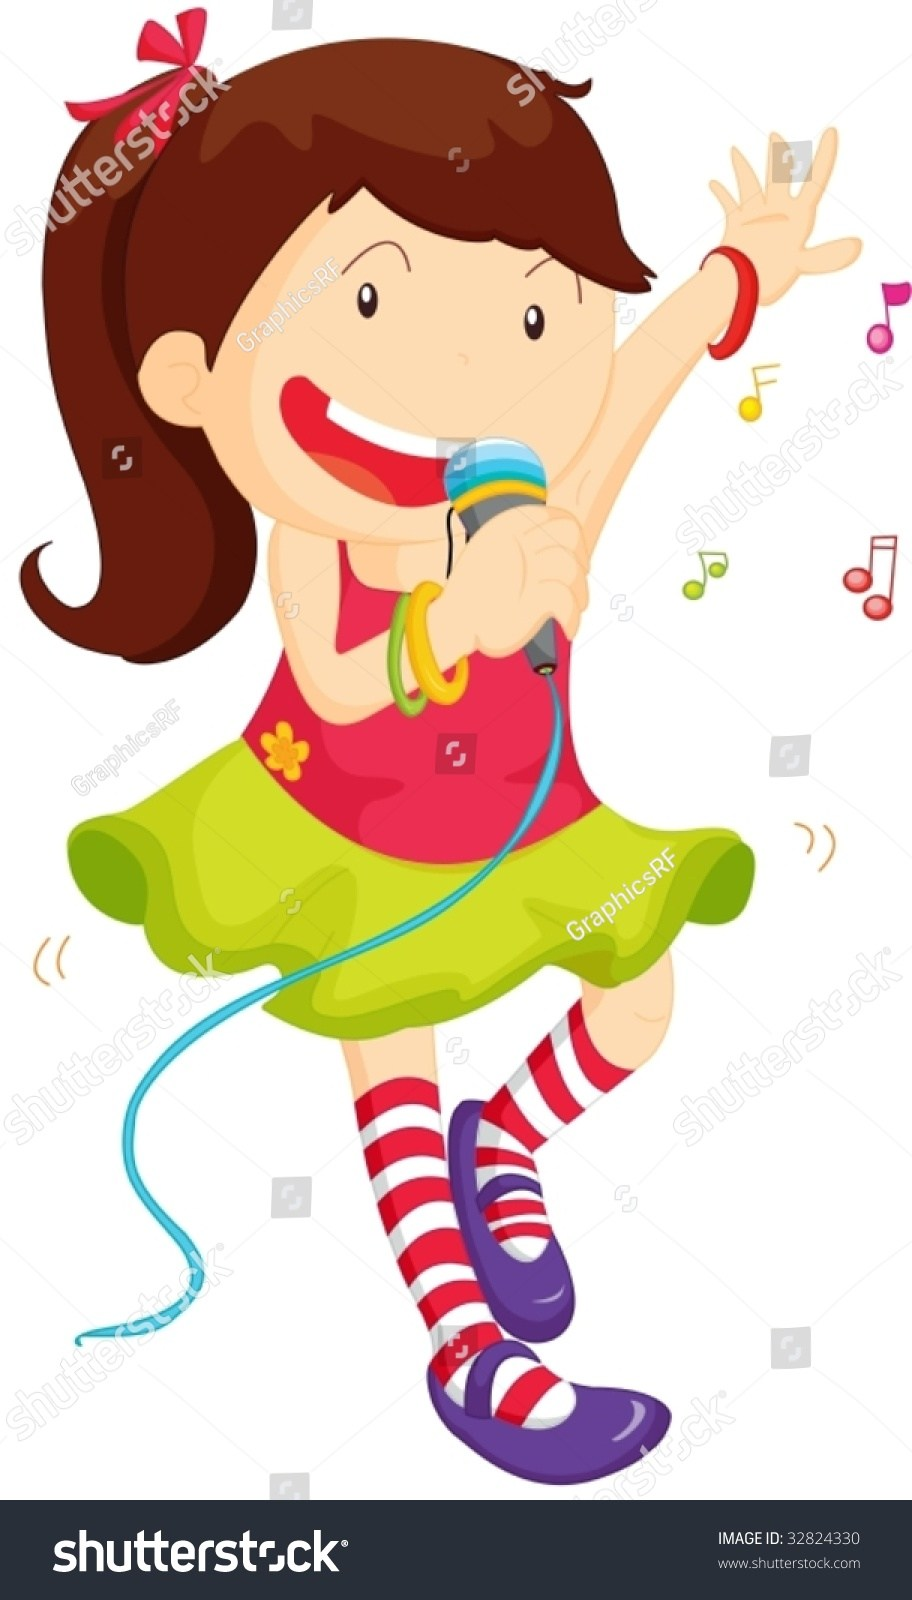 Girl singing clipart png 4 » Clipart Portal.